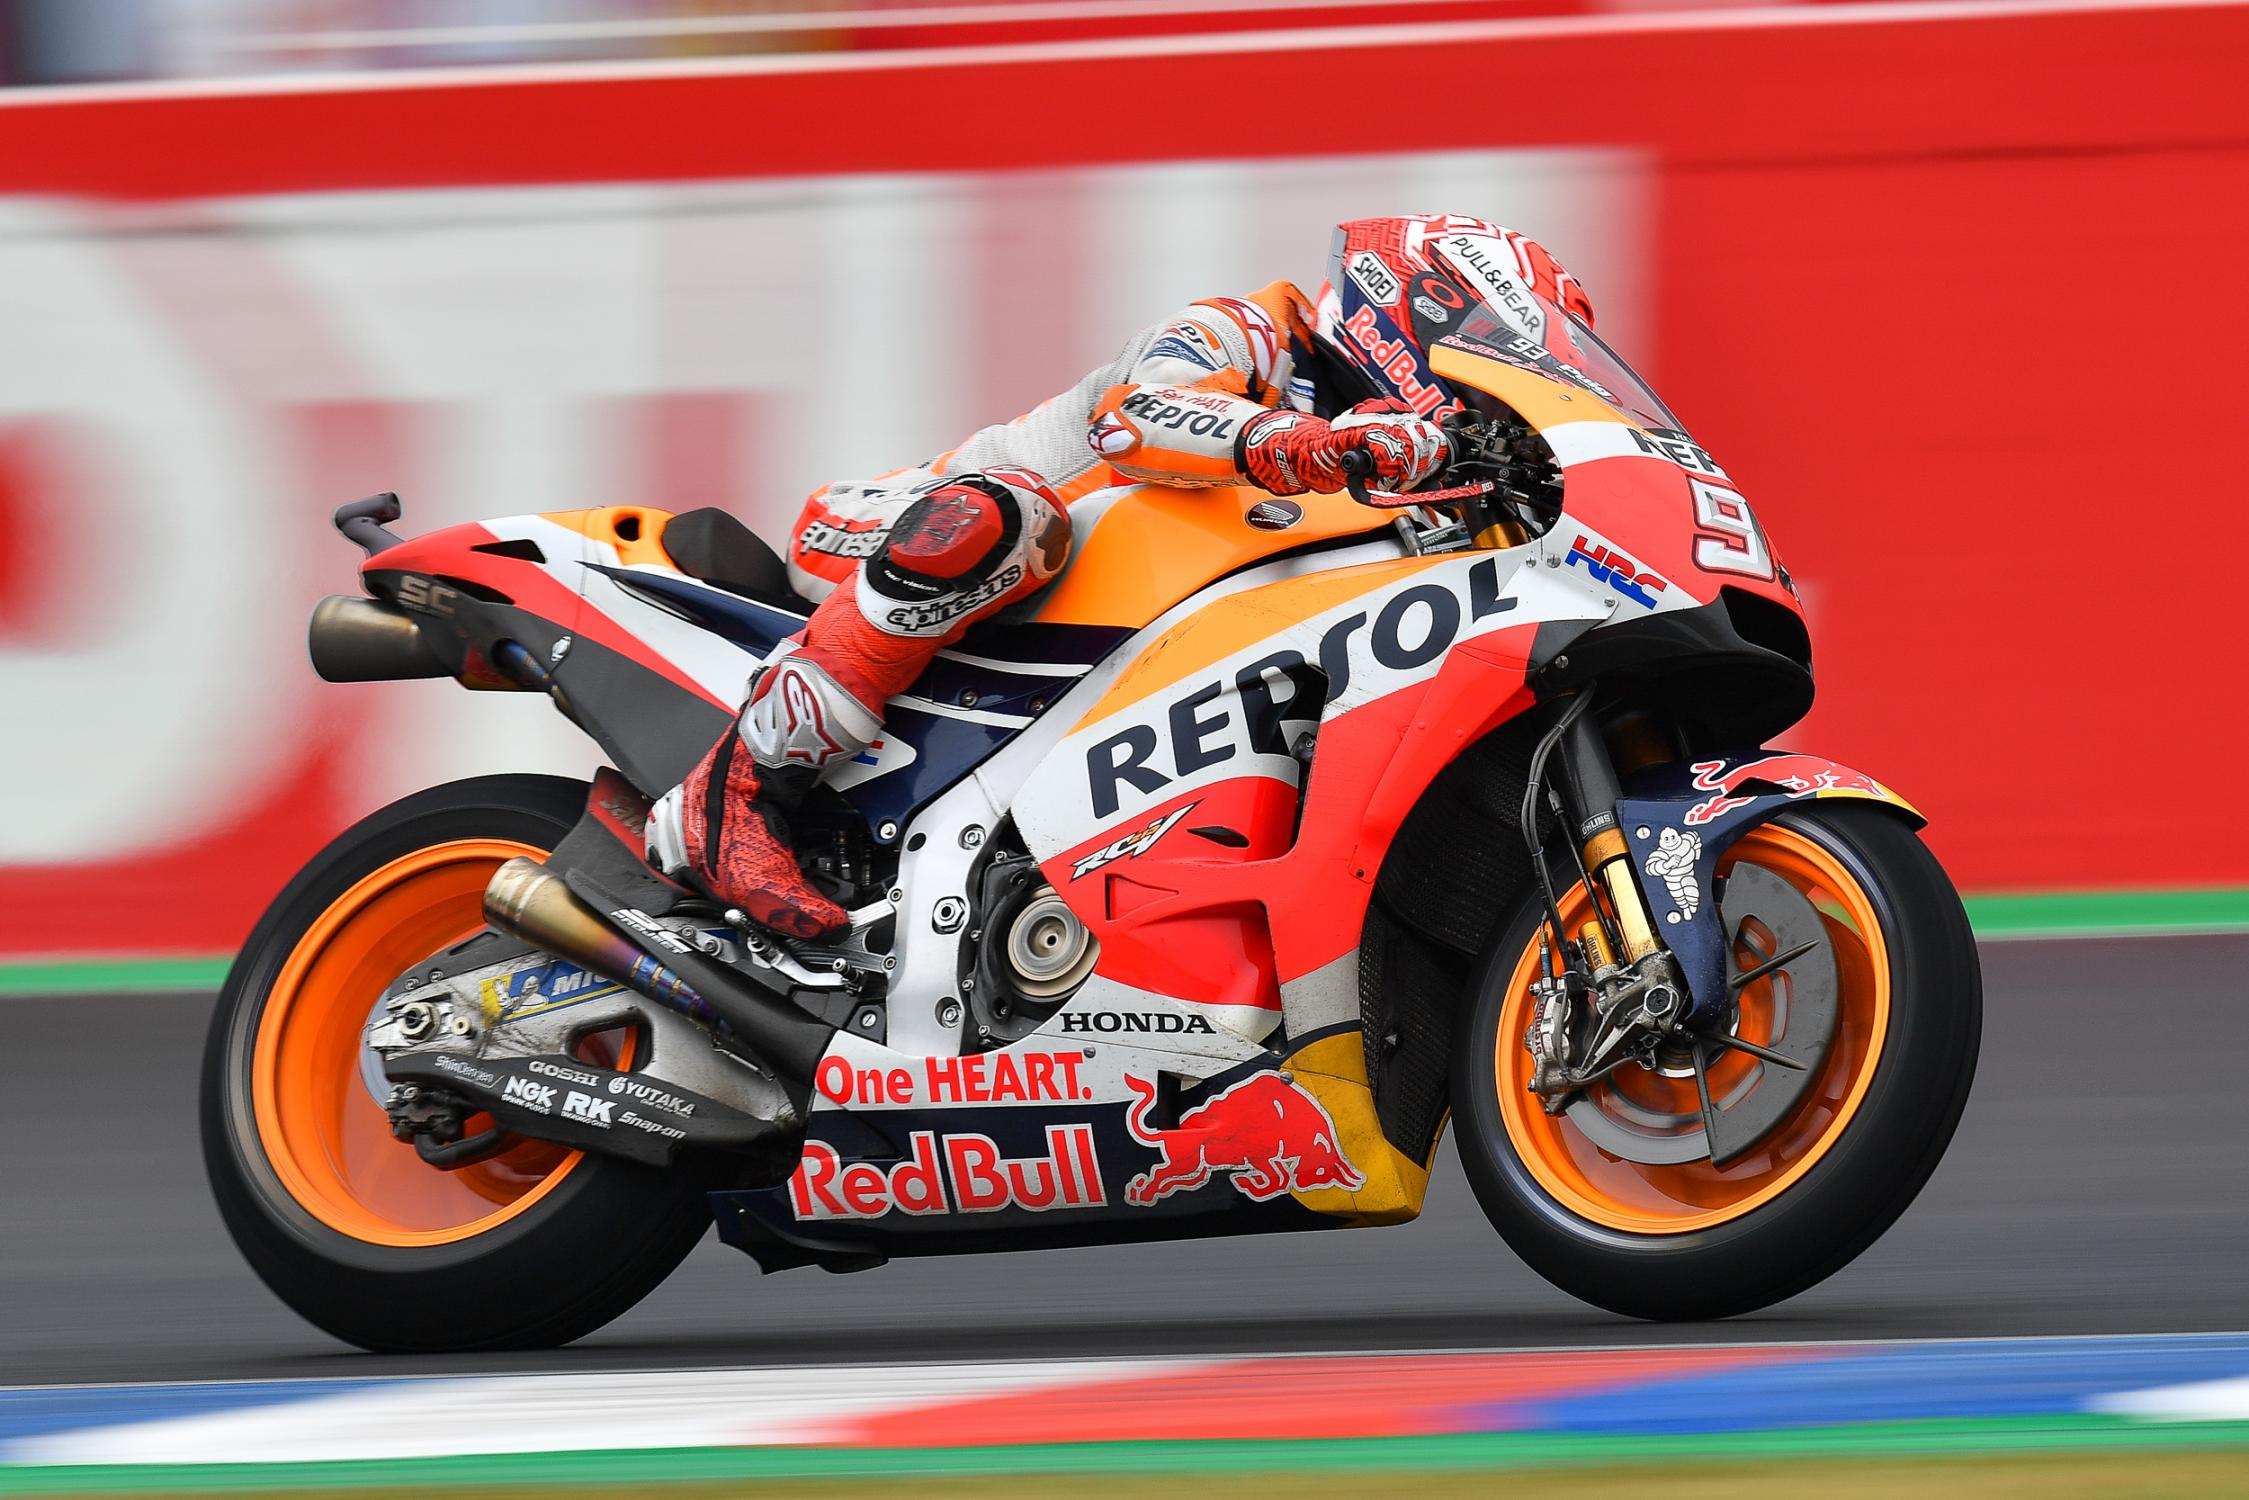 93-marc-marquez-esplg5_2861.gallery_full_top_fullscreen.jpg